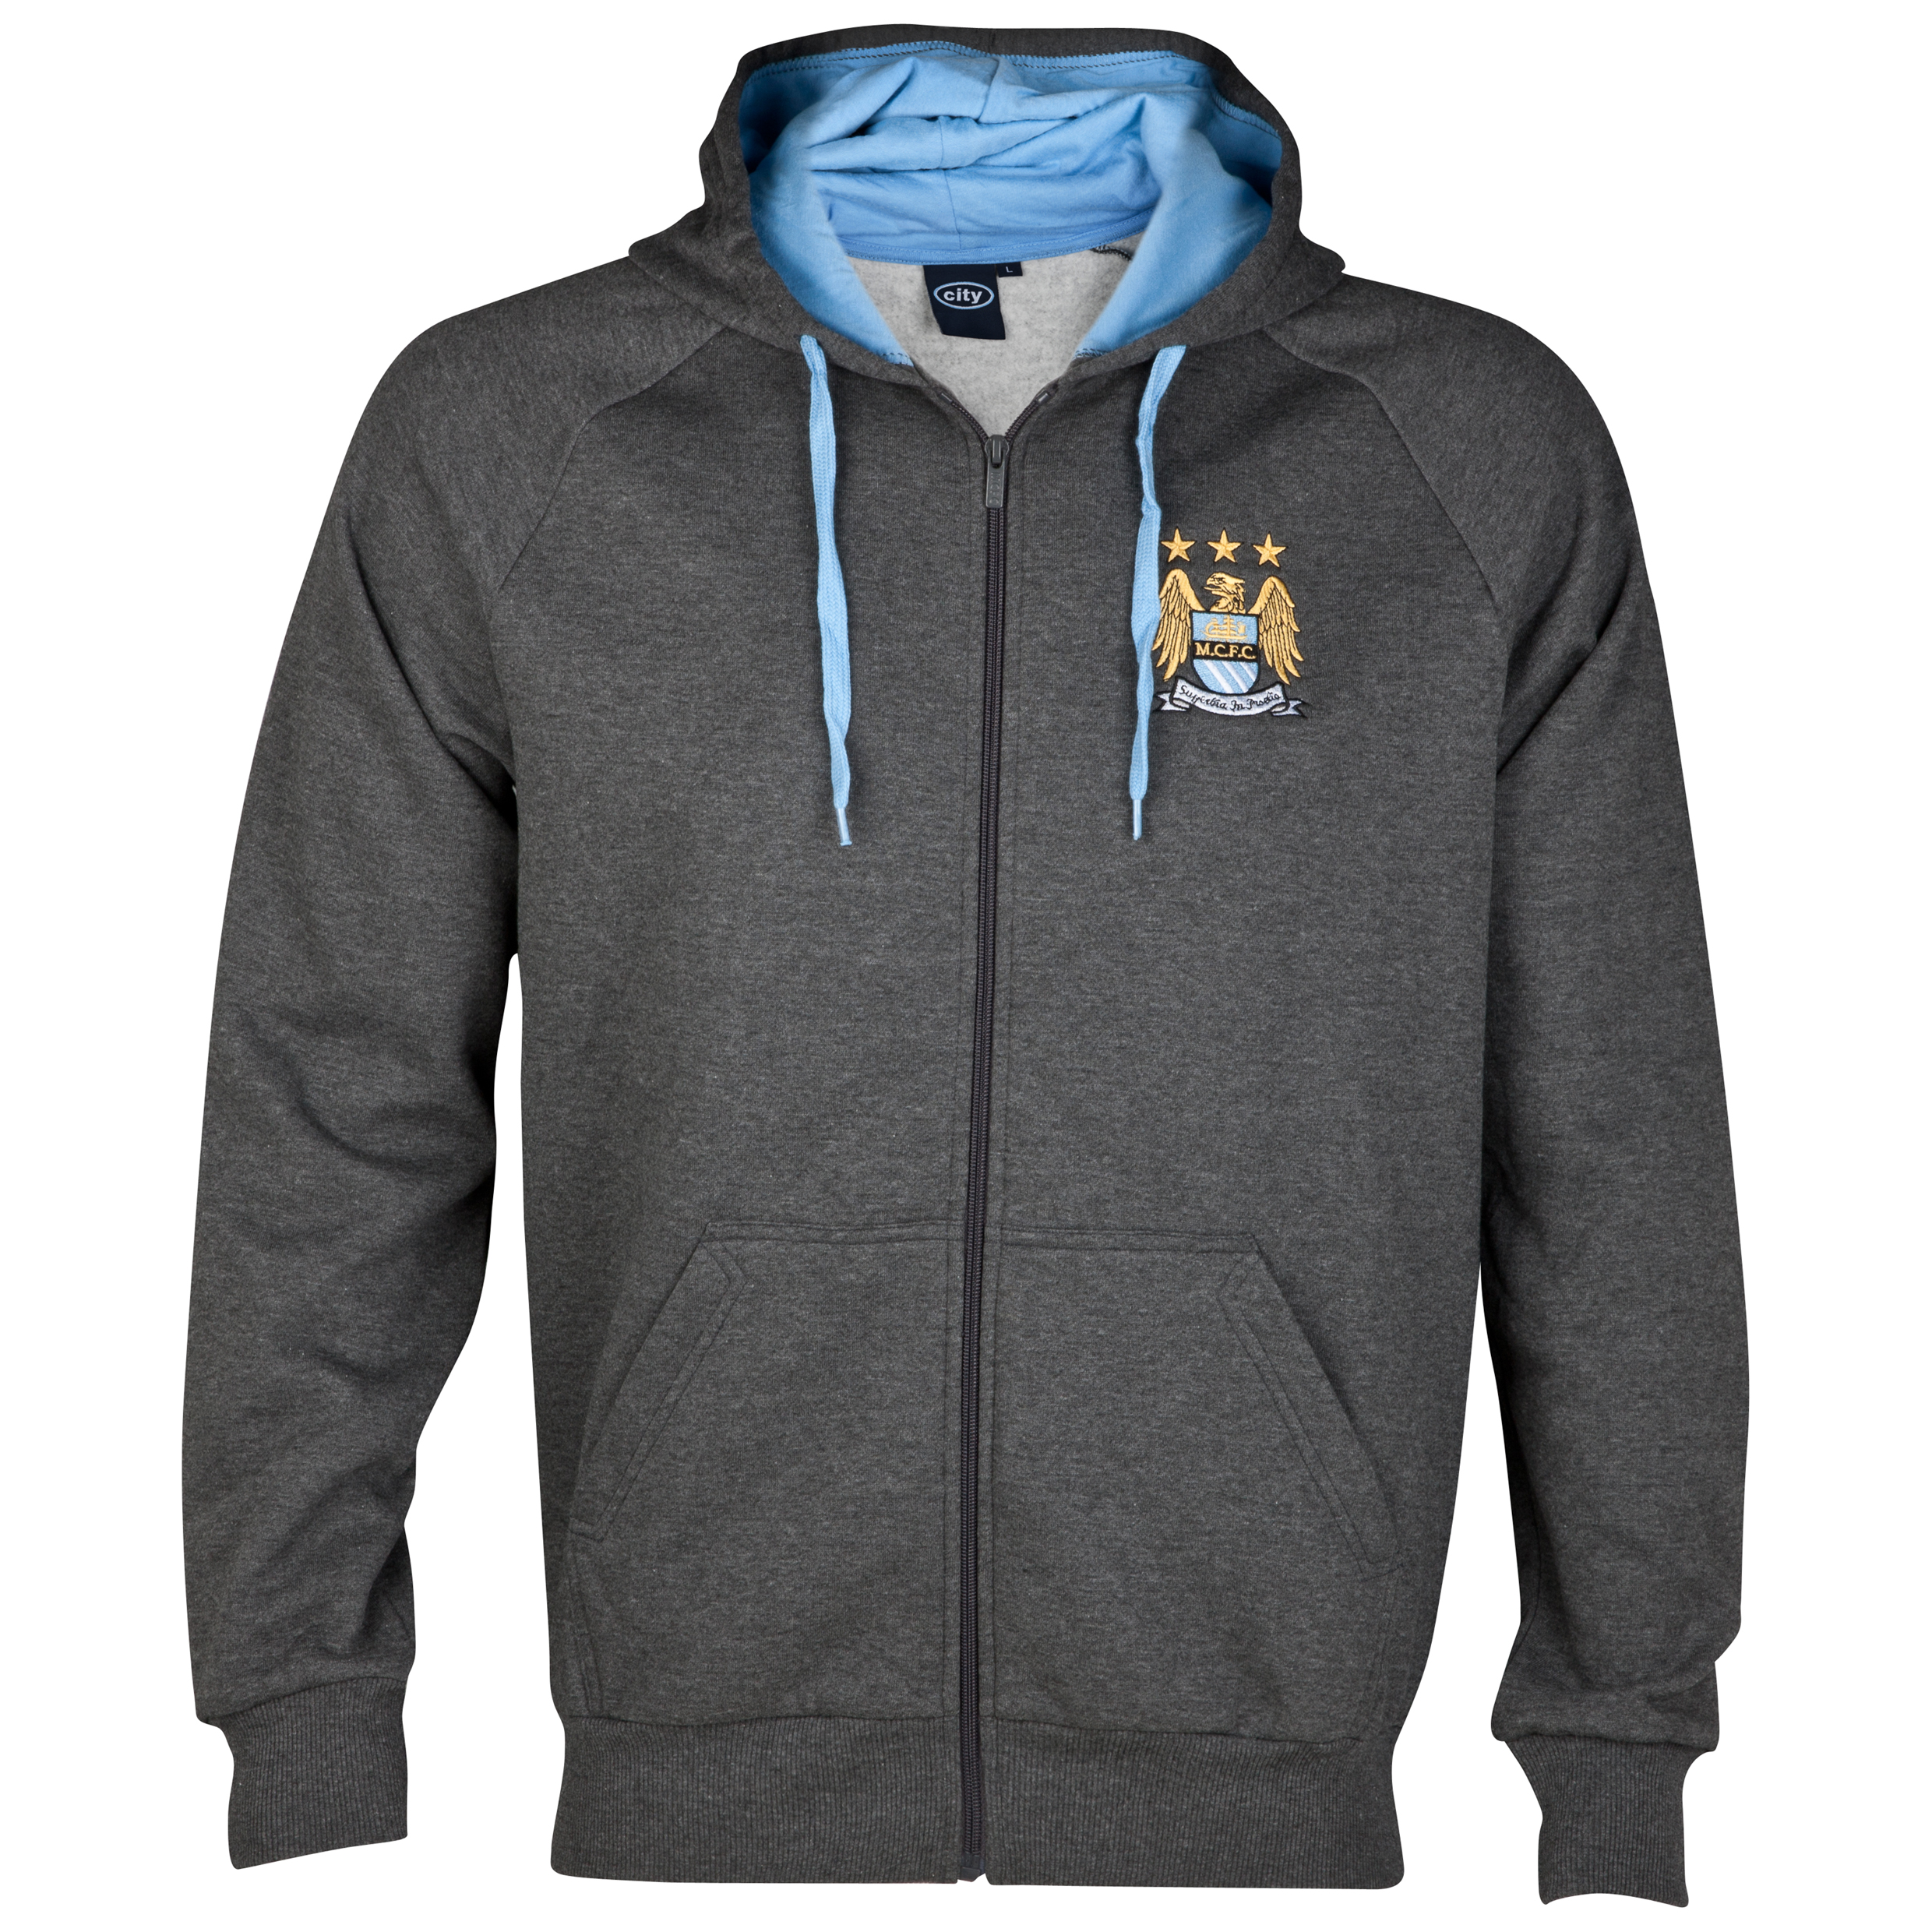 Manchester City Essential Trigon Zip Through Hoodie - Charcoal - Infant Boys